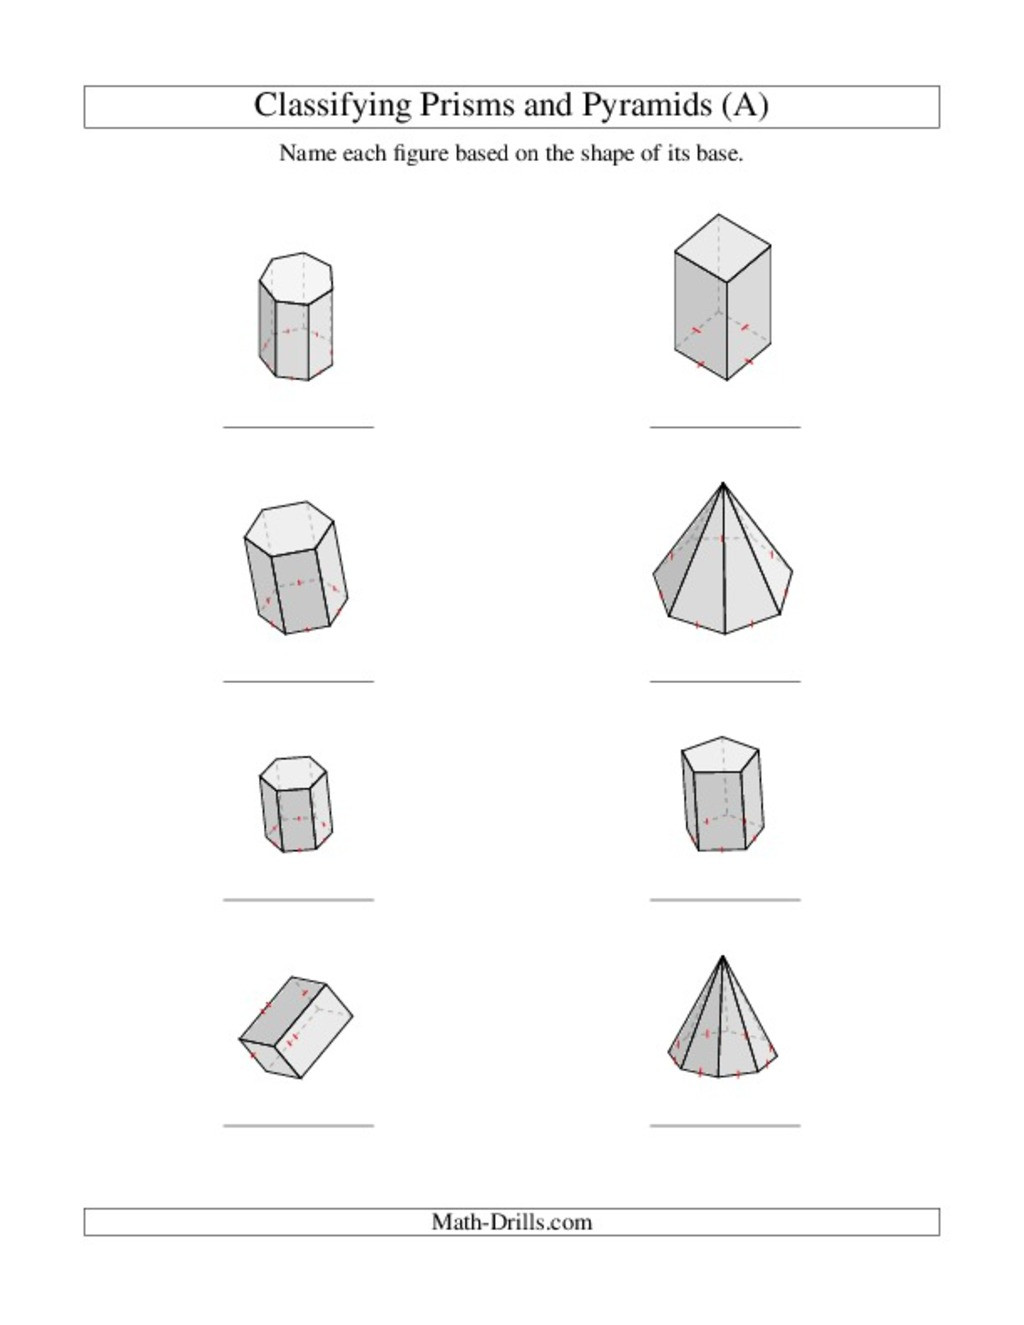 Free Printable 3d Shapes Worksheets Teaching 3d Shapes Lesson Plans & Worksheets Reviewed by